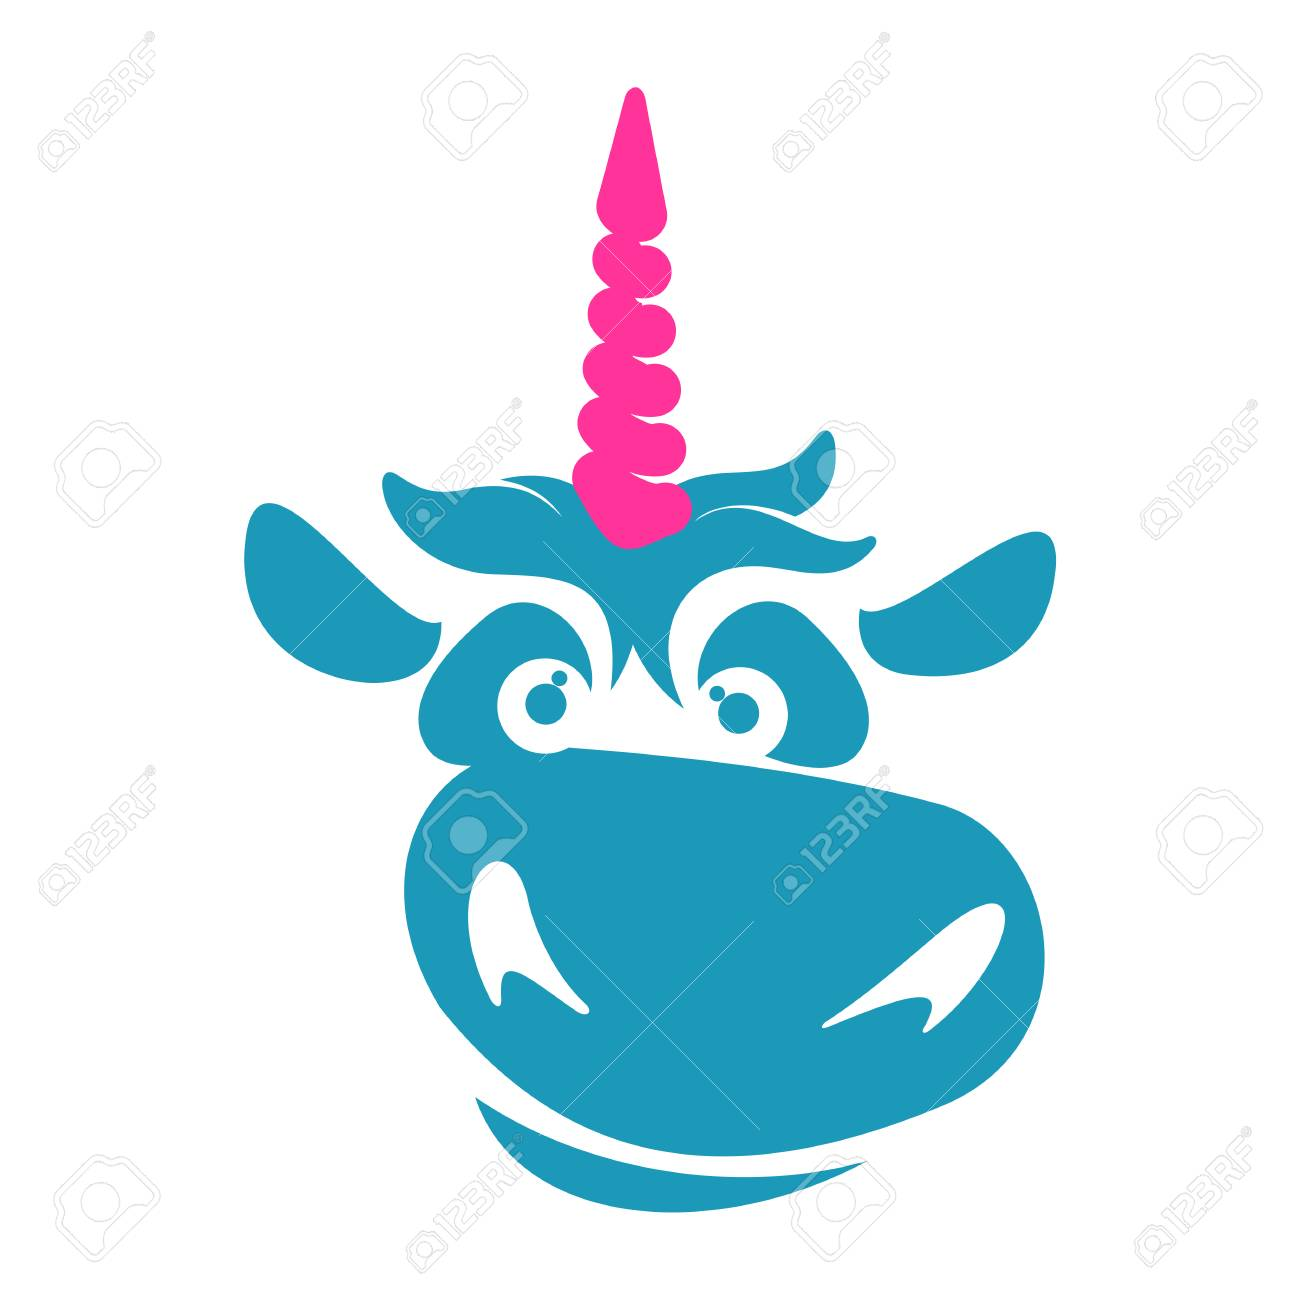 funny unicorn face graphic logo template full color catroon